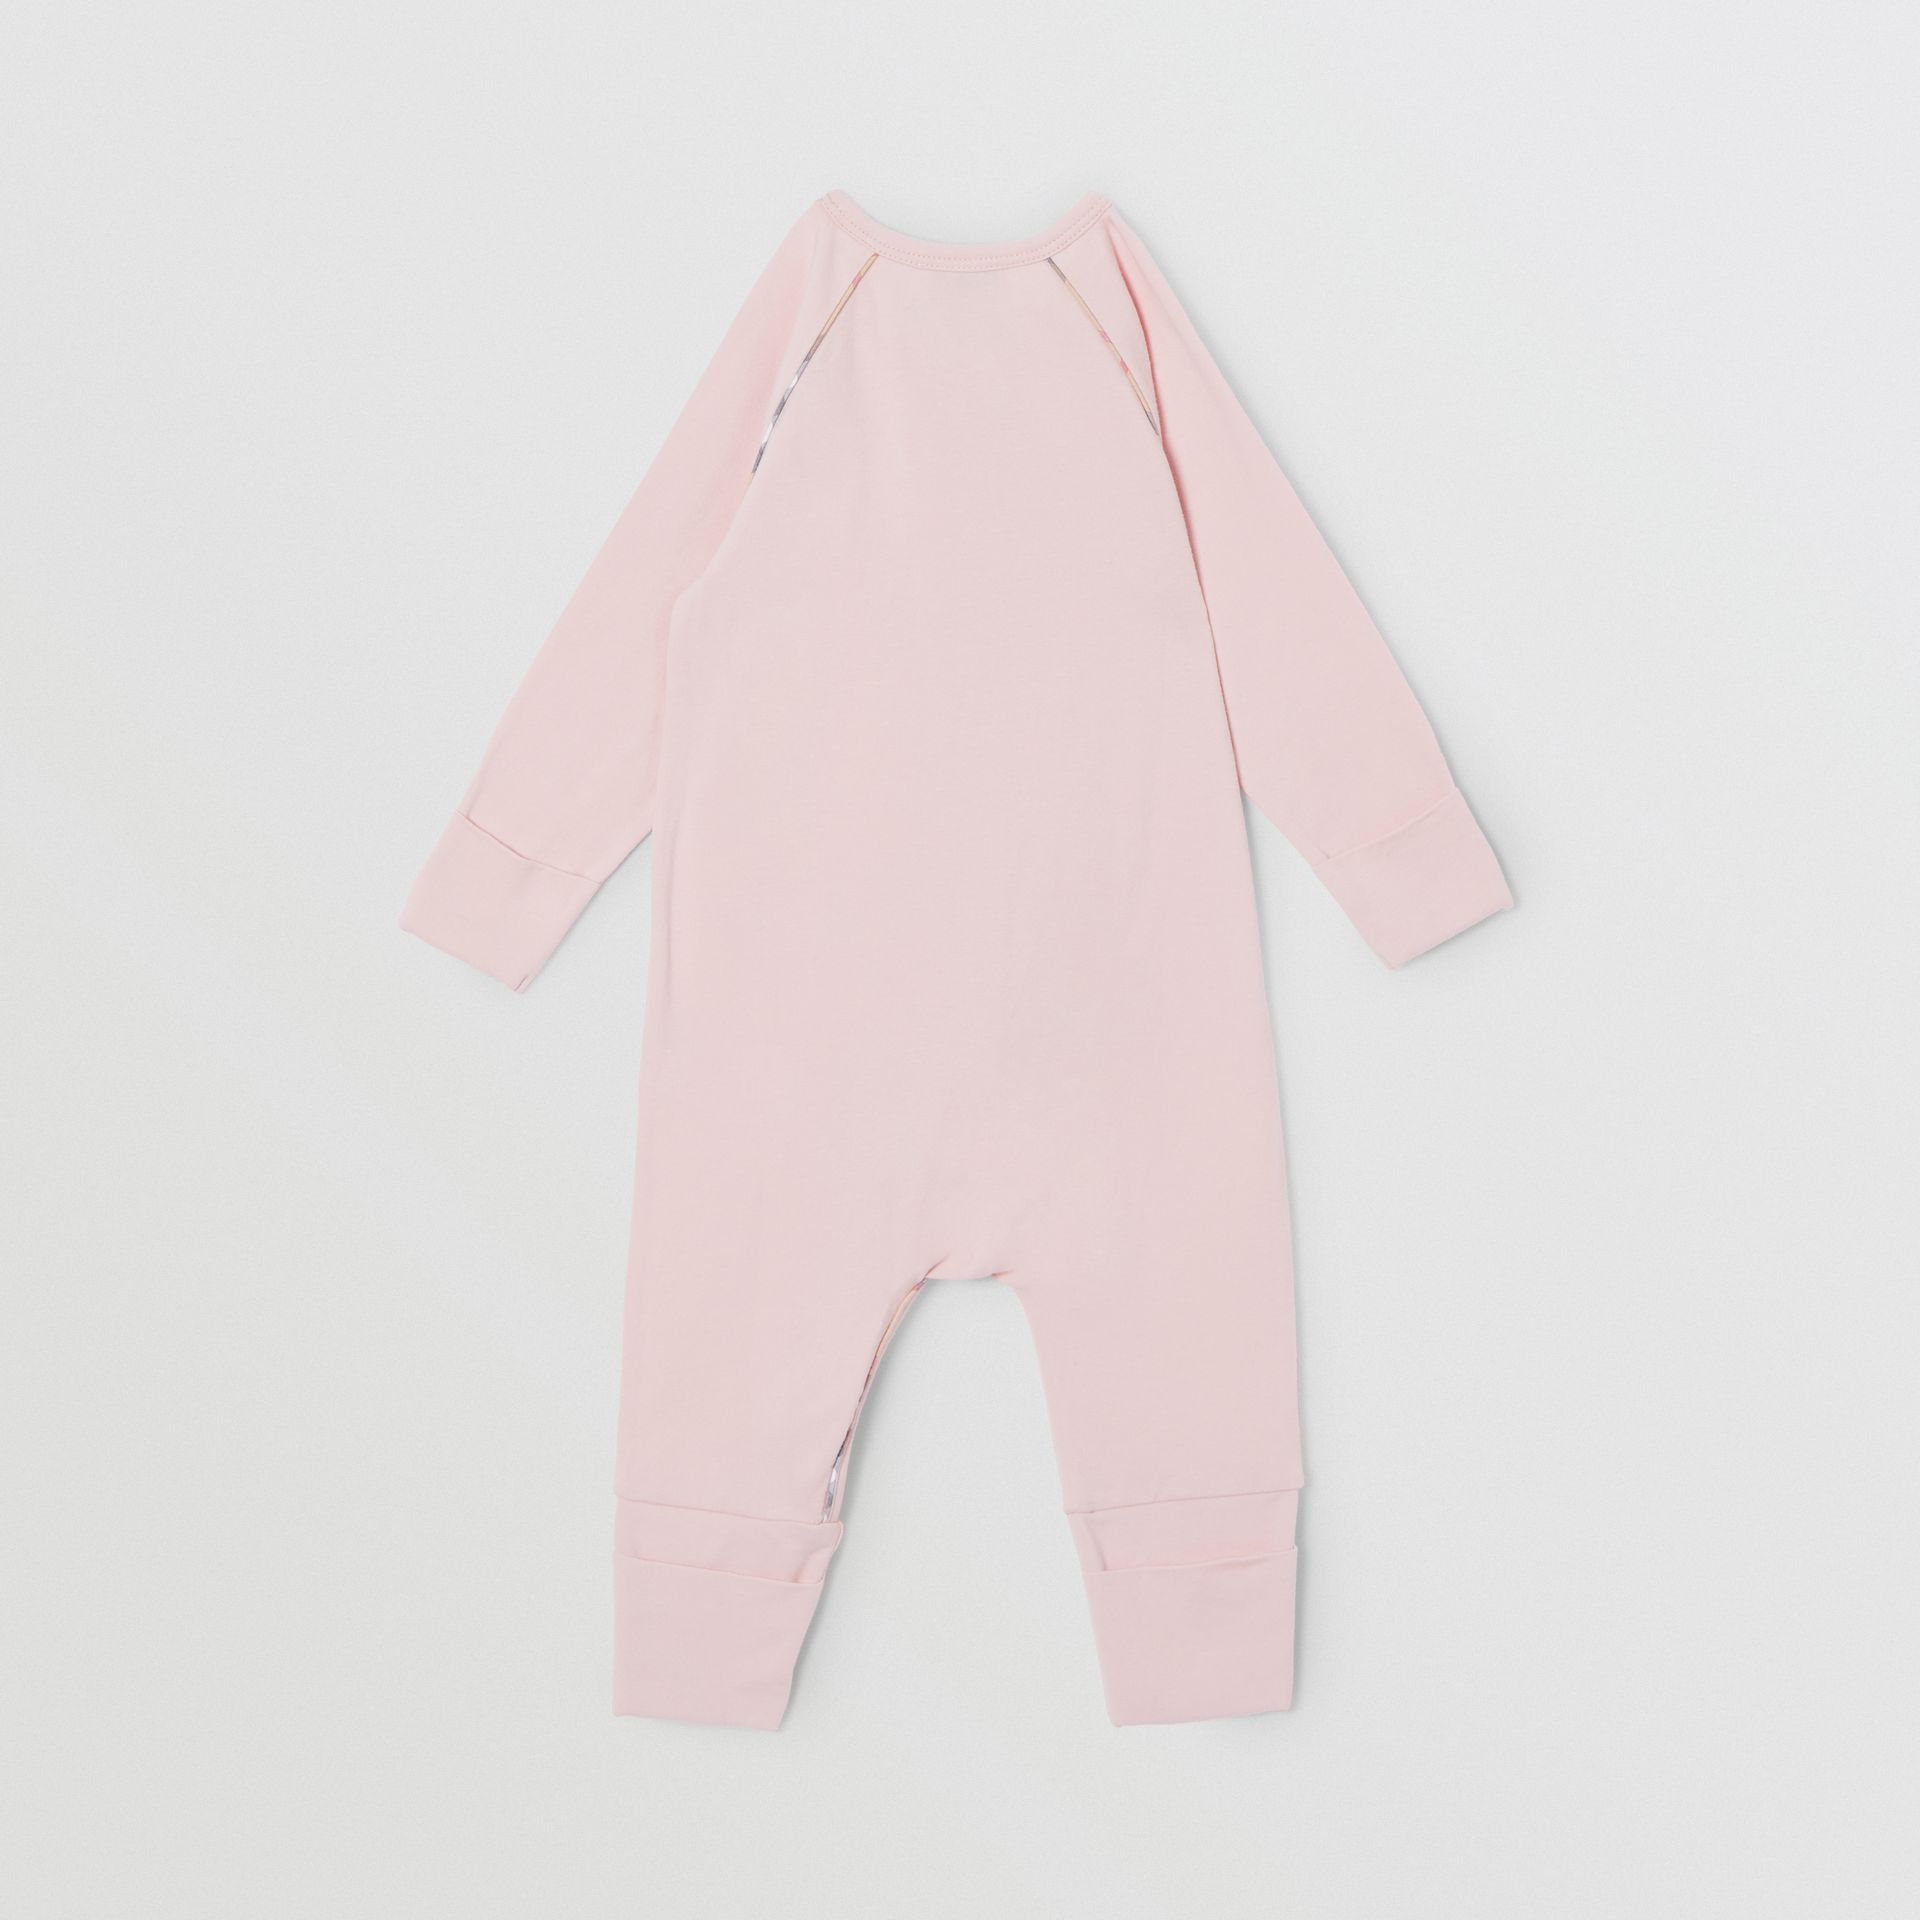 Check Trim Stretch Cotton Three-piece Baby Gift Set in Lavender Pink - Children | Burberry - gallery image 6